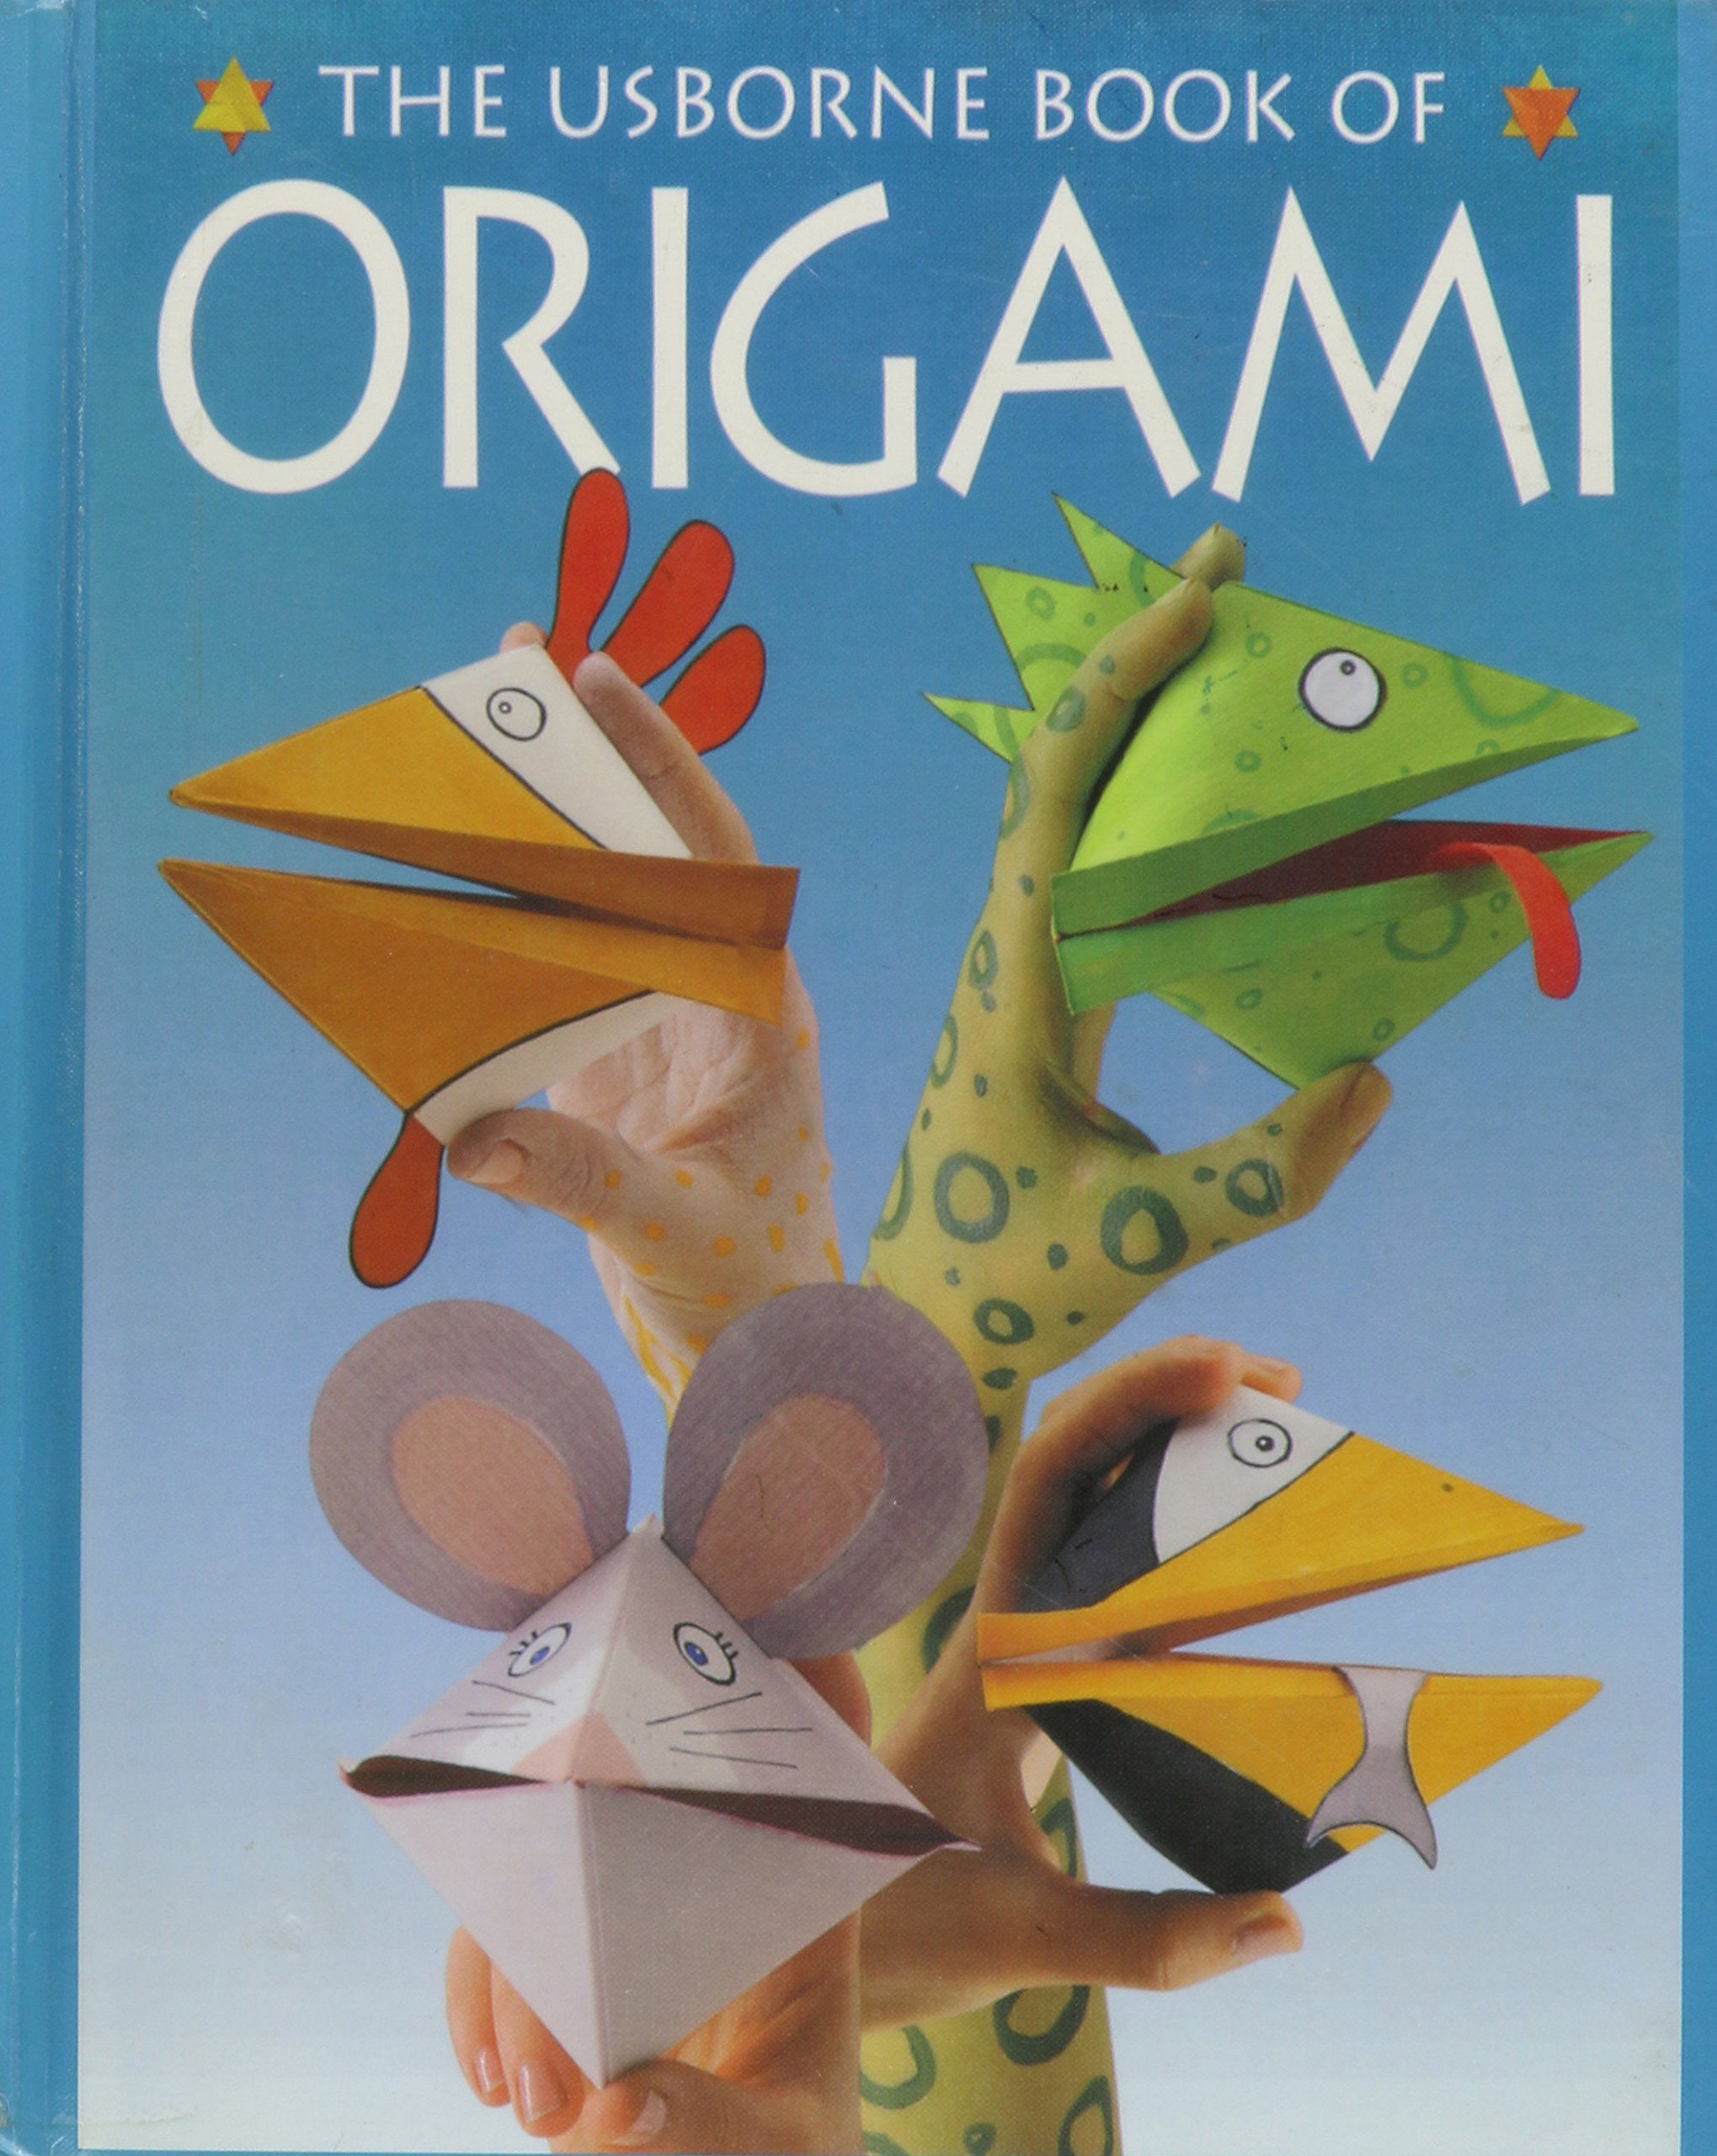 The Usborne Book Of Origami How To Make Series Eileen Obrien Christmas Bird Feeder Diagram Kate Needham Fiona Watt John Woodcock 9780881109382 Books